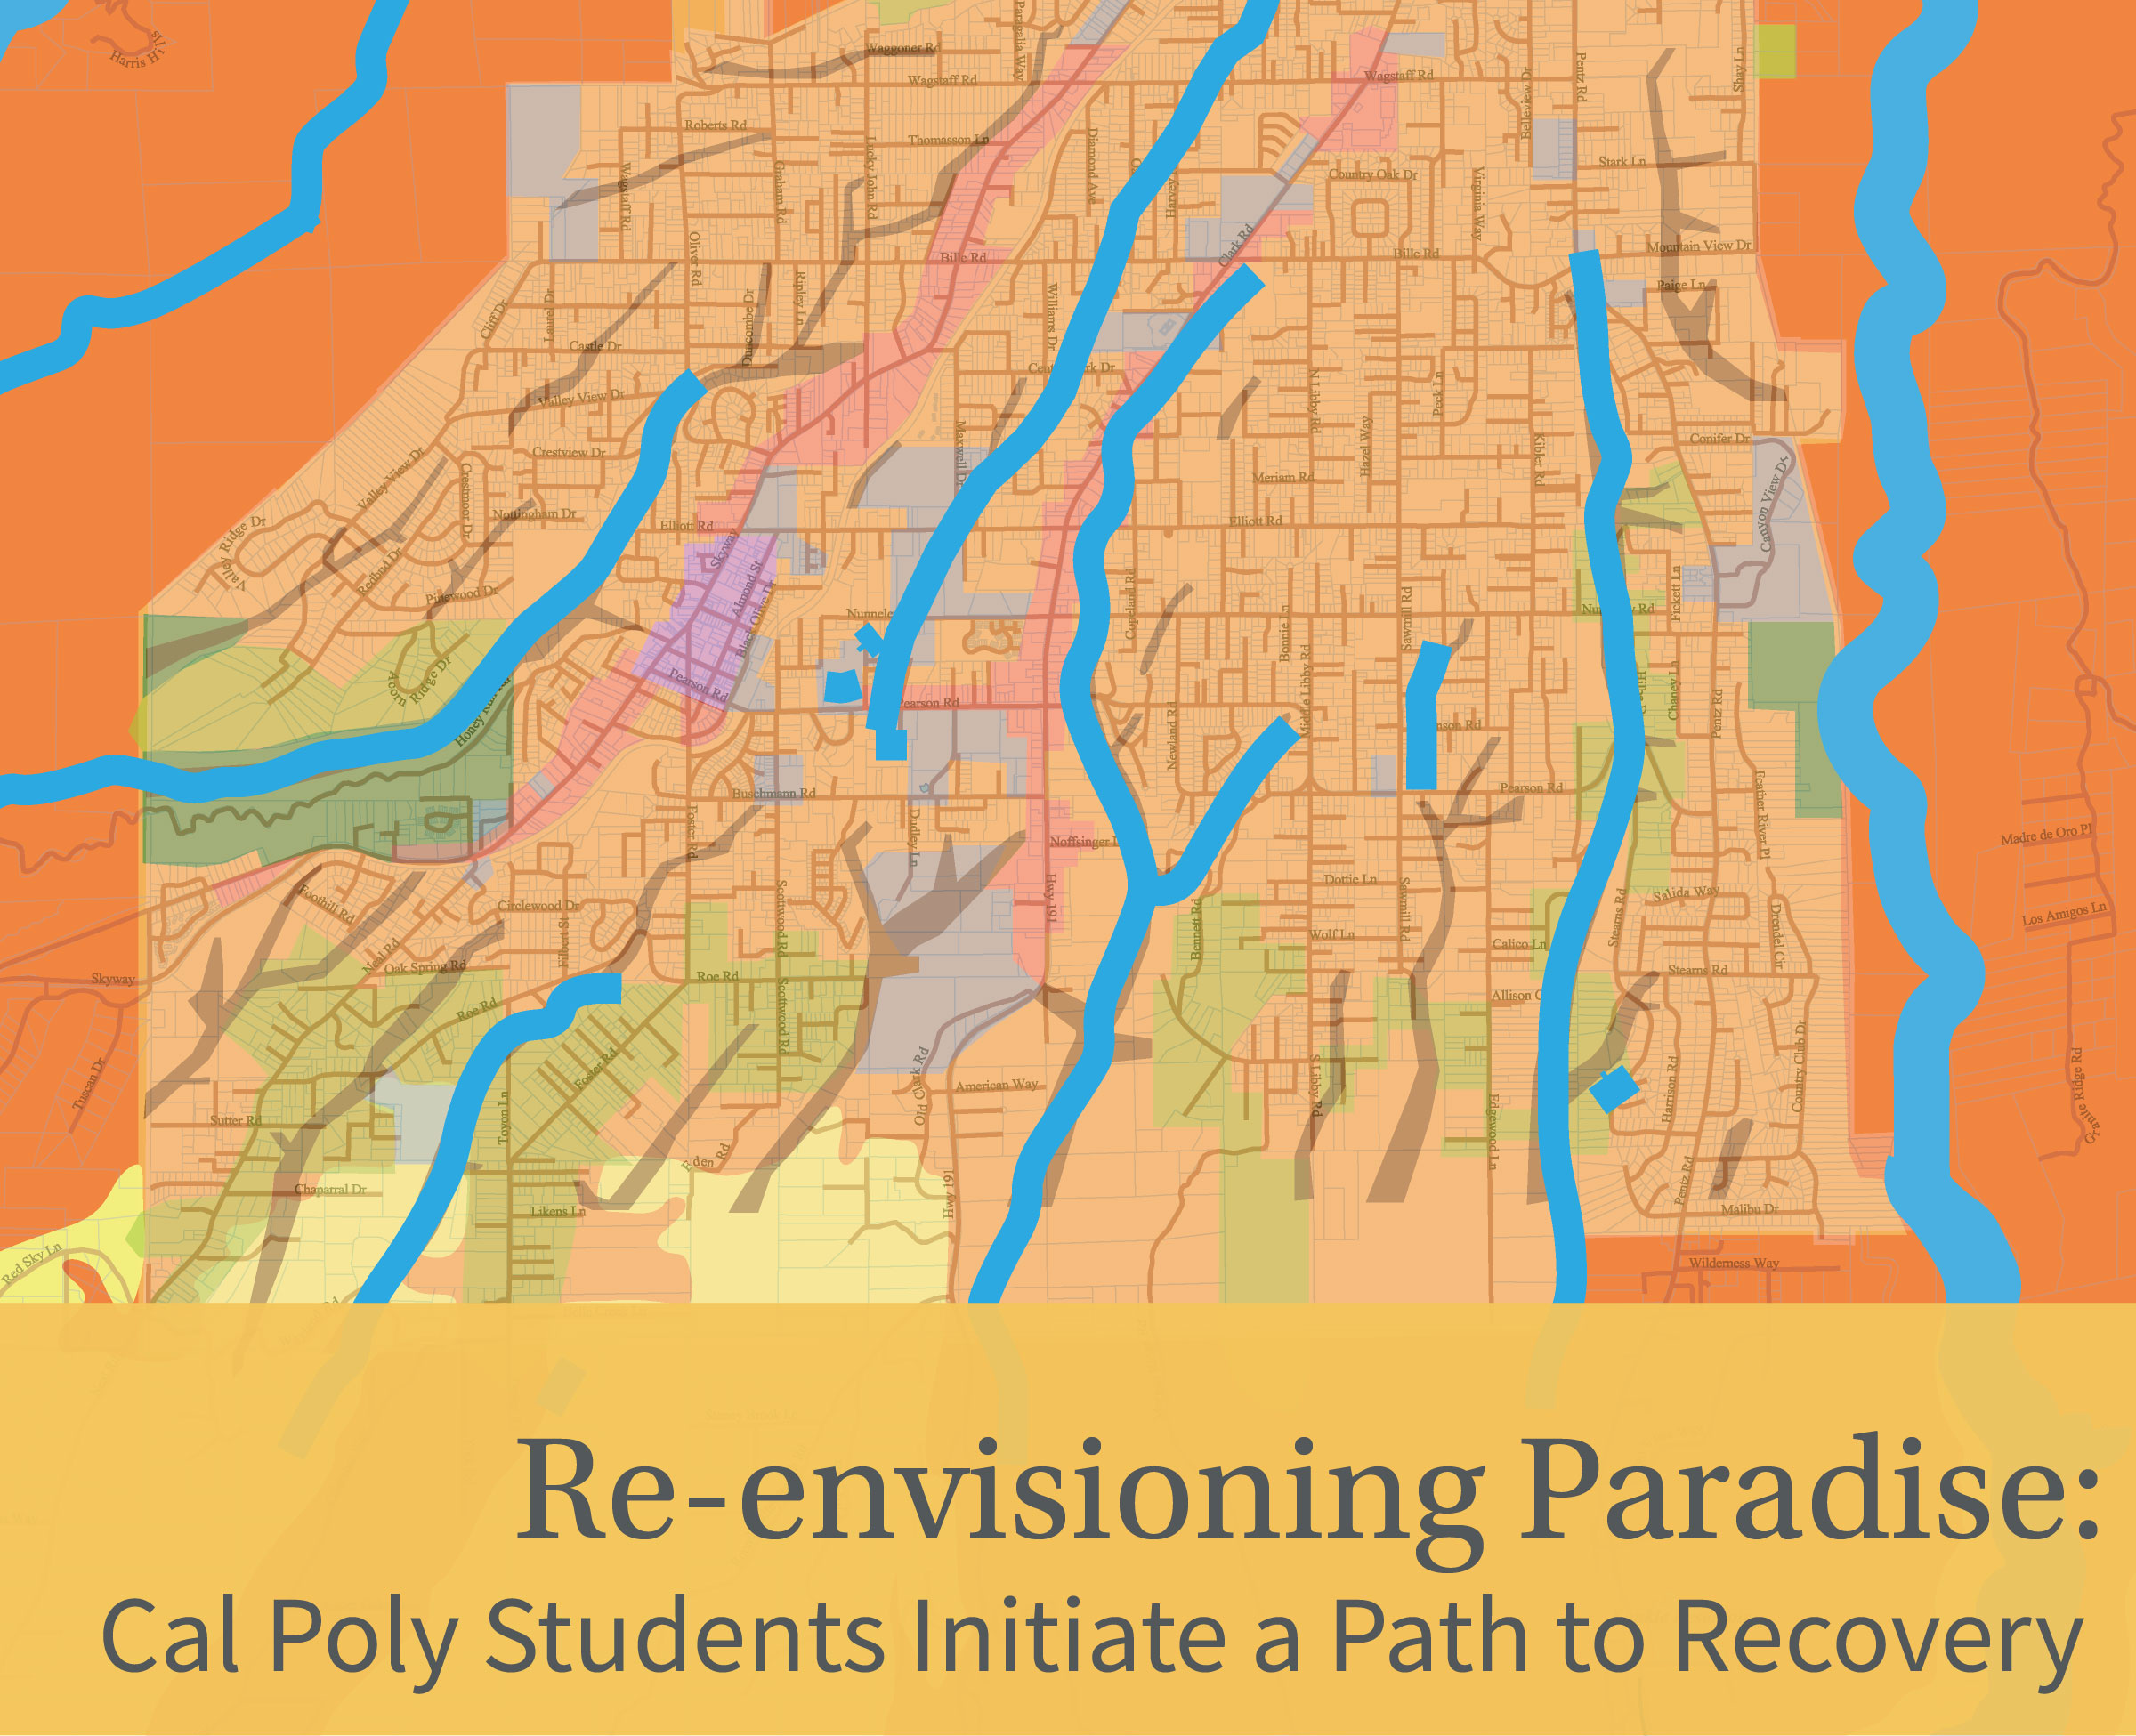 Re-envisioning Paradise: Cal Poly Students Initiate a Path to Recovery